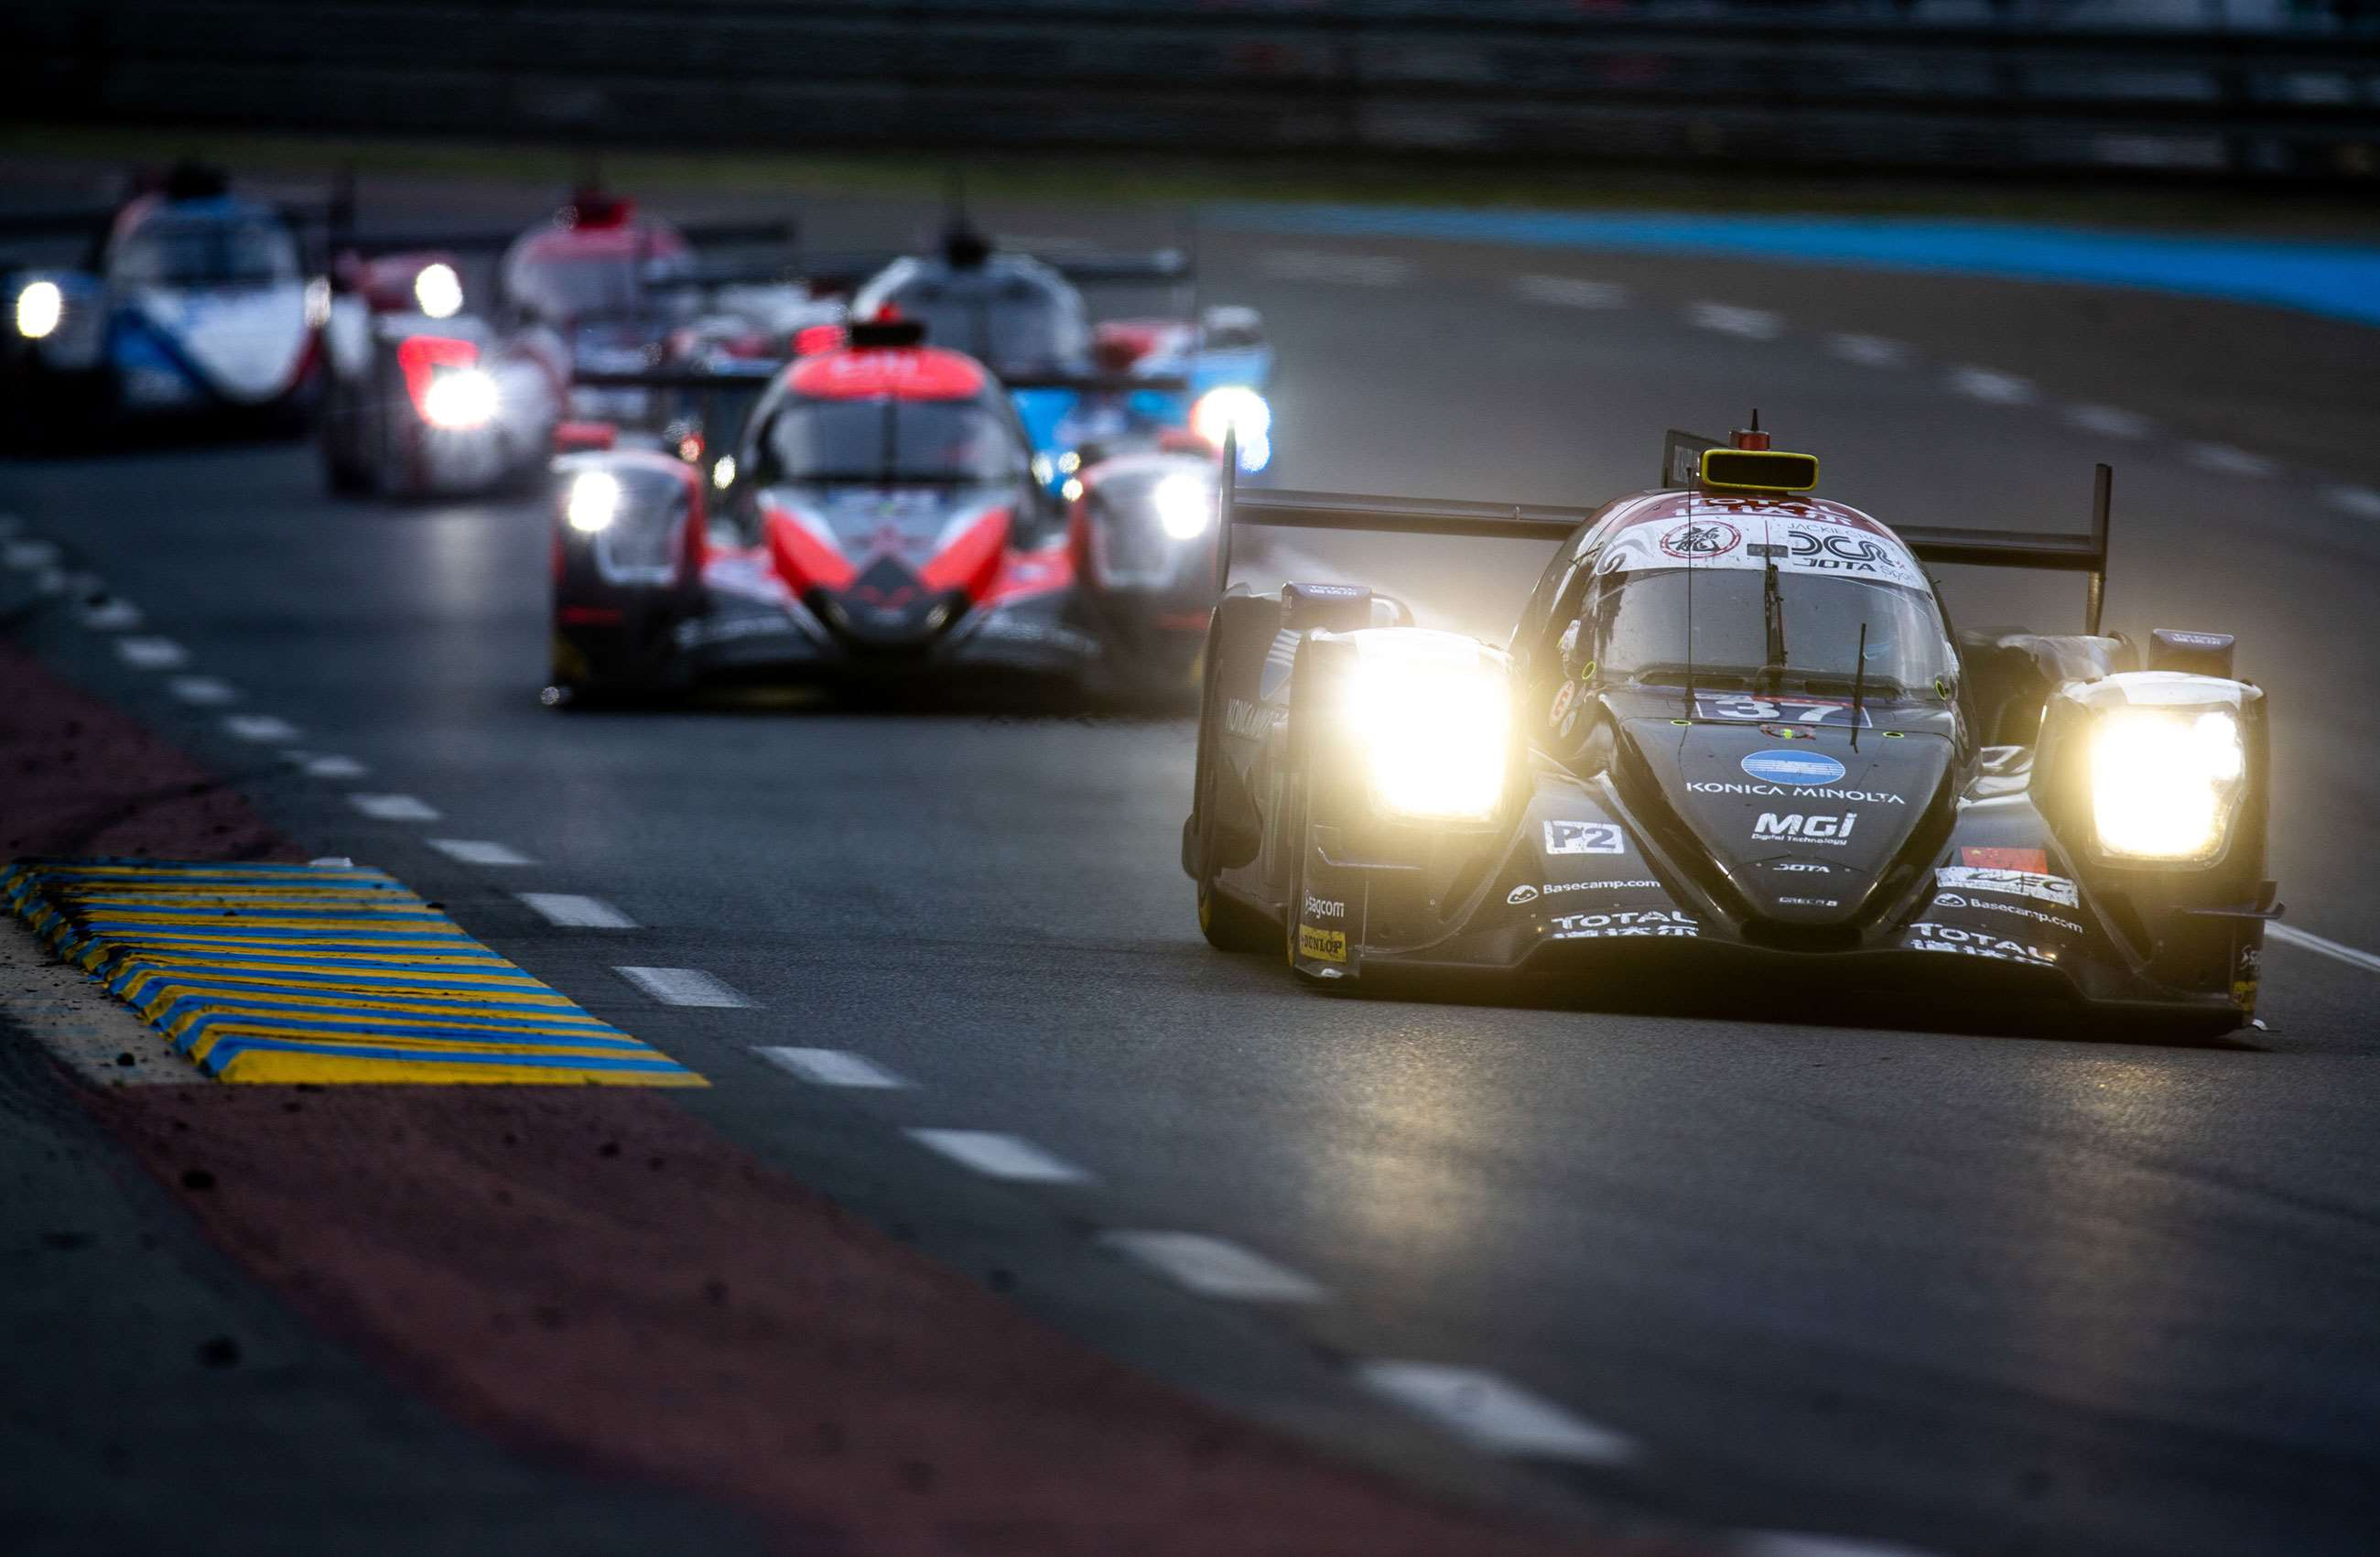 Brand new Lemans 24 hours race track Cushion cover